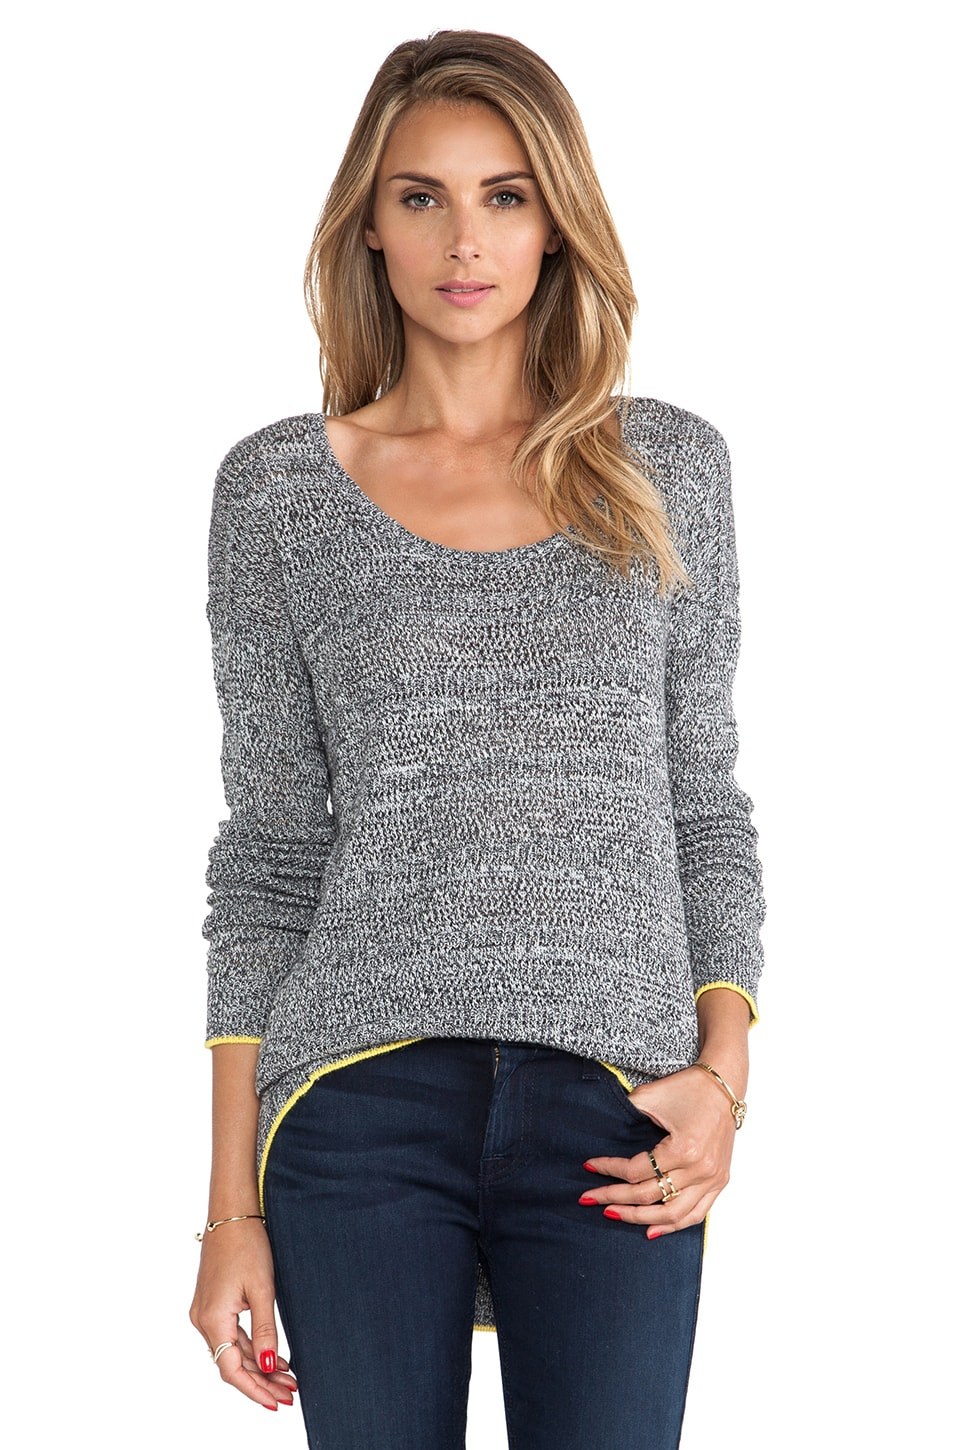 C&C California Angora Mesh Sweater in Heather Grey